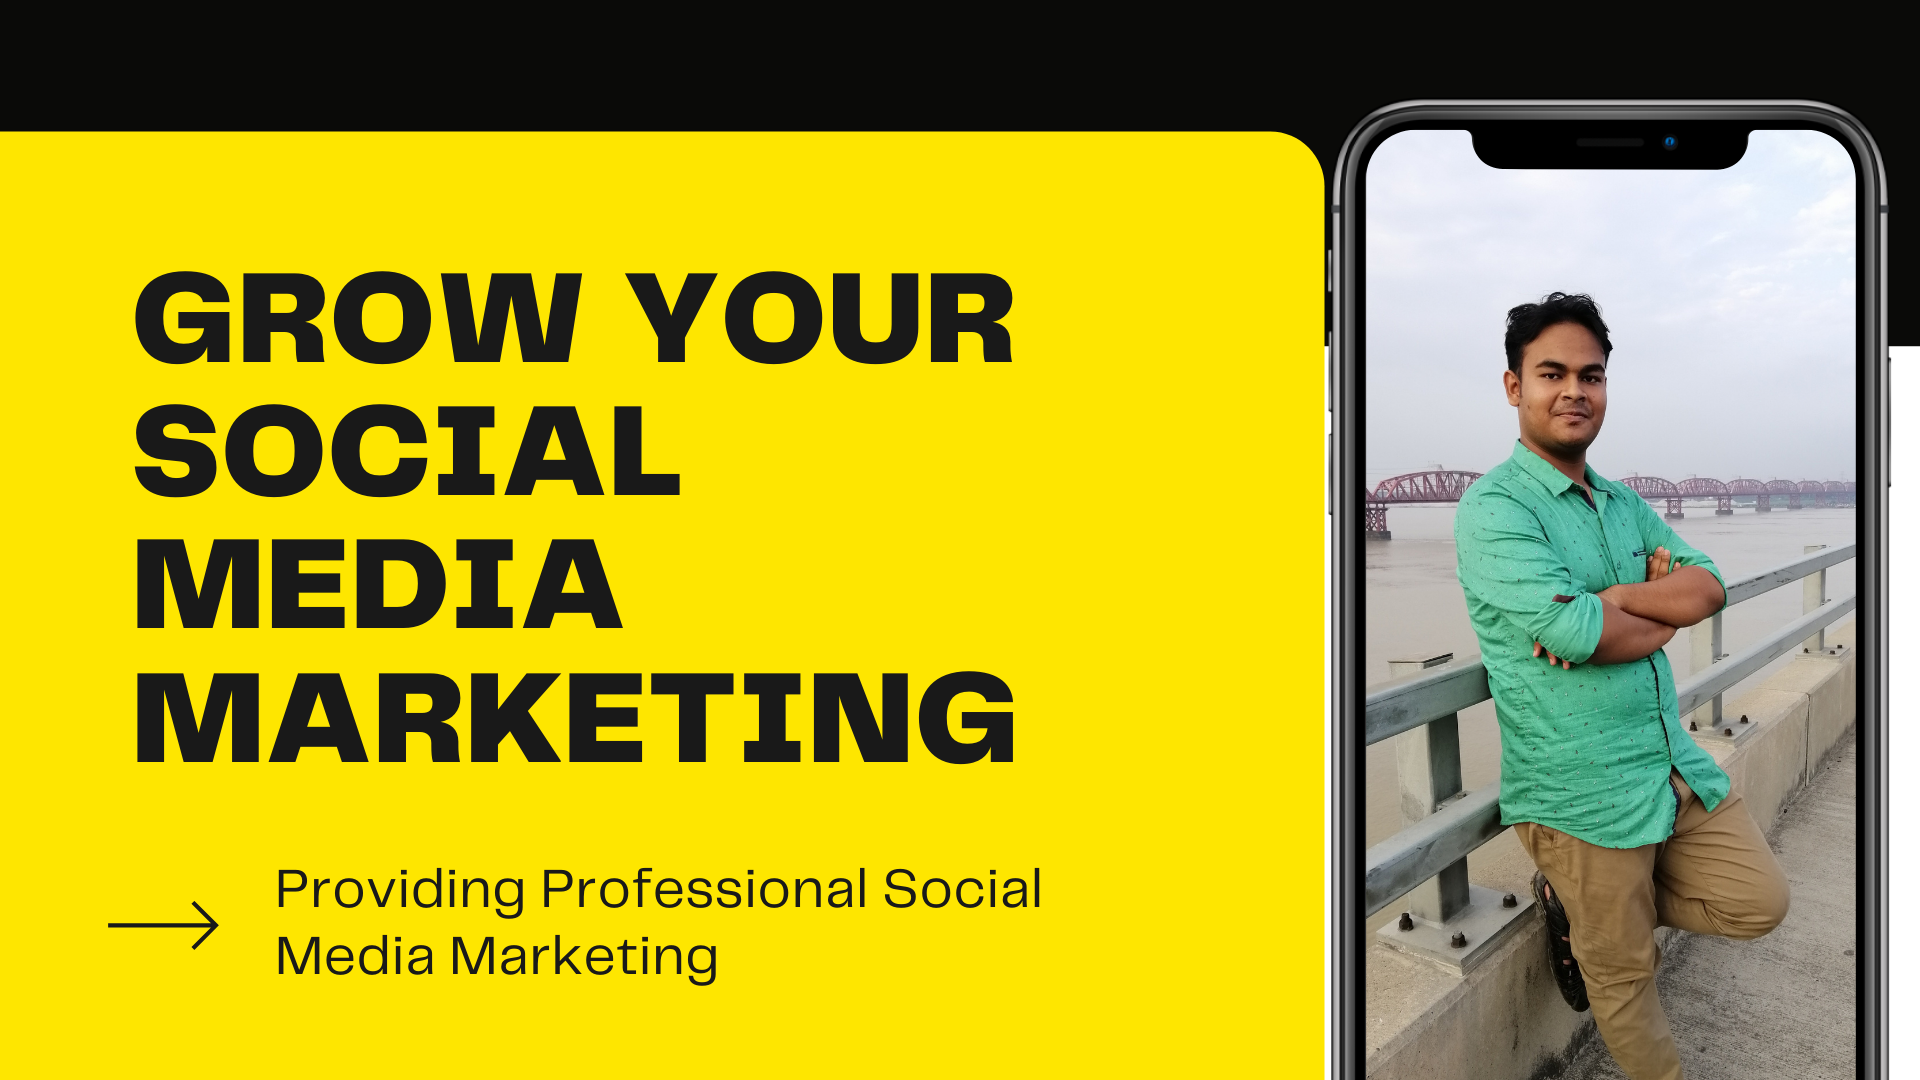 social media marketing manager grow your business